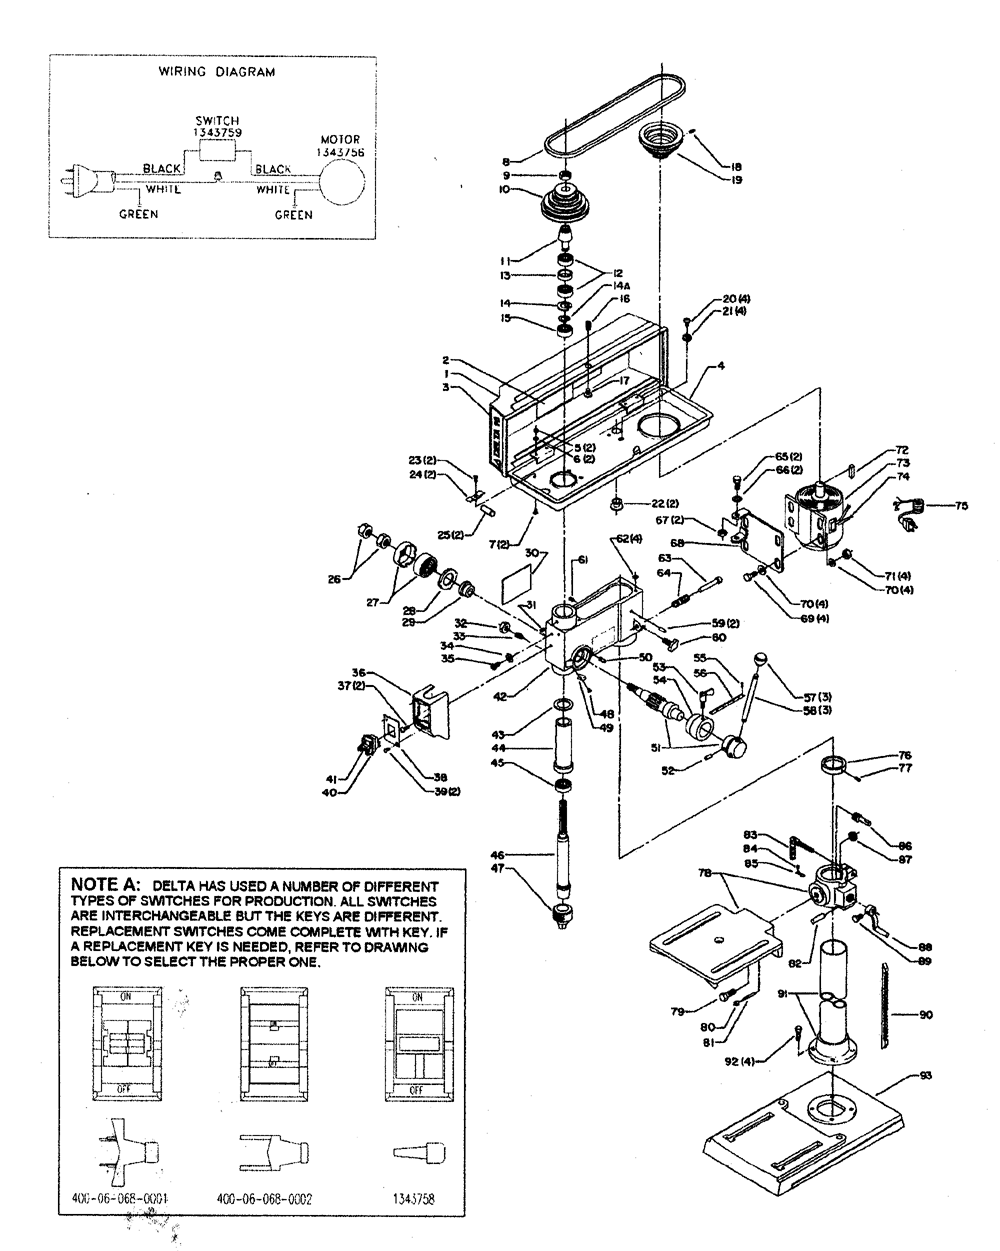 hight resolution of craftsman drill dayton drill press manual pdf download about dayton press manual download 64mb complete heavy duty catalog 140 easy ordering convenient